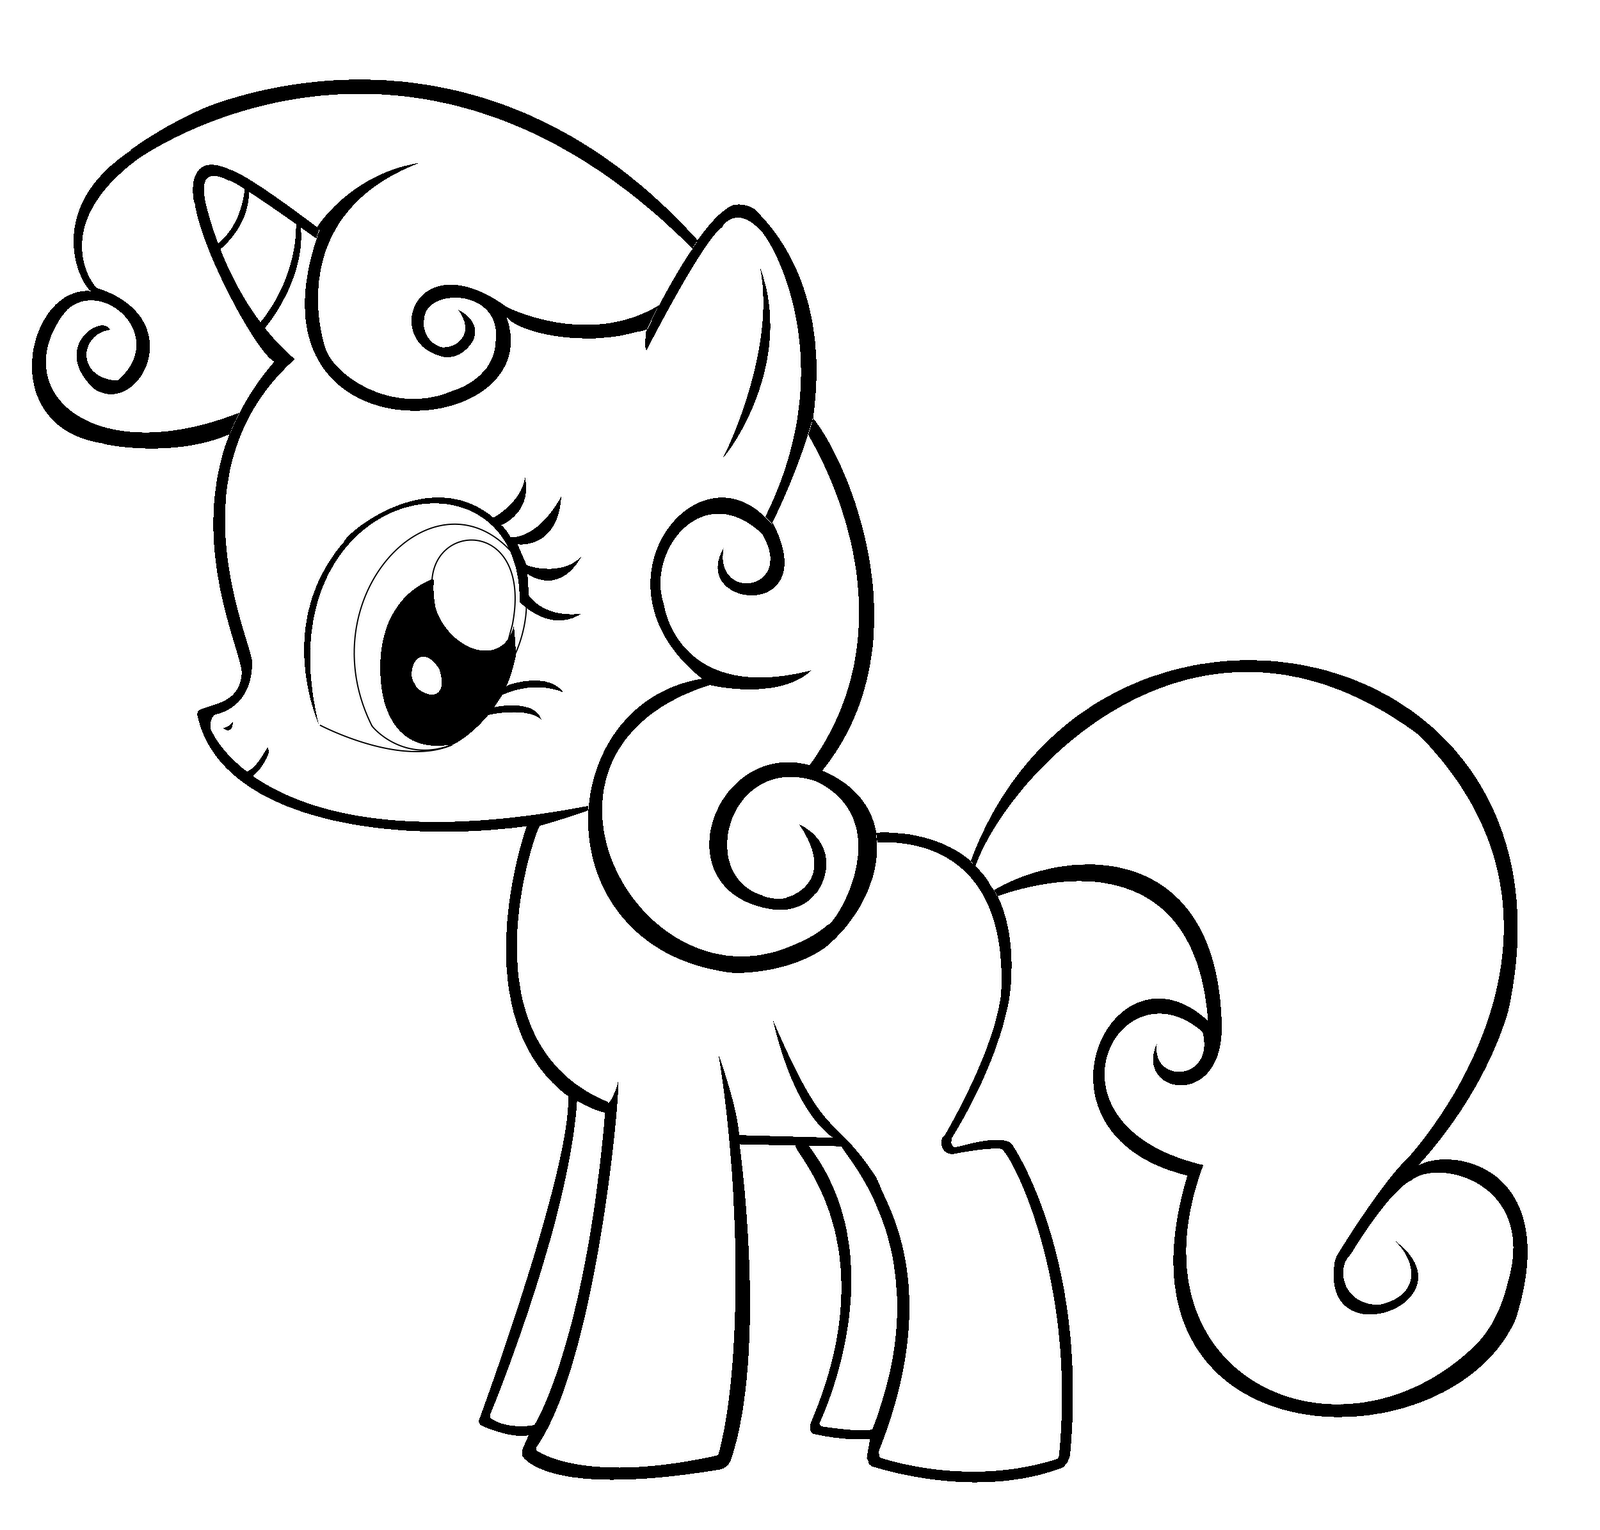 Free printable my little pony coloring pages for kids for Coloring pages that are cute